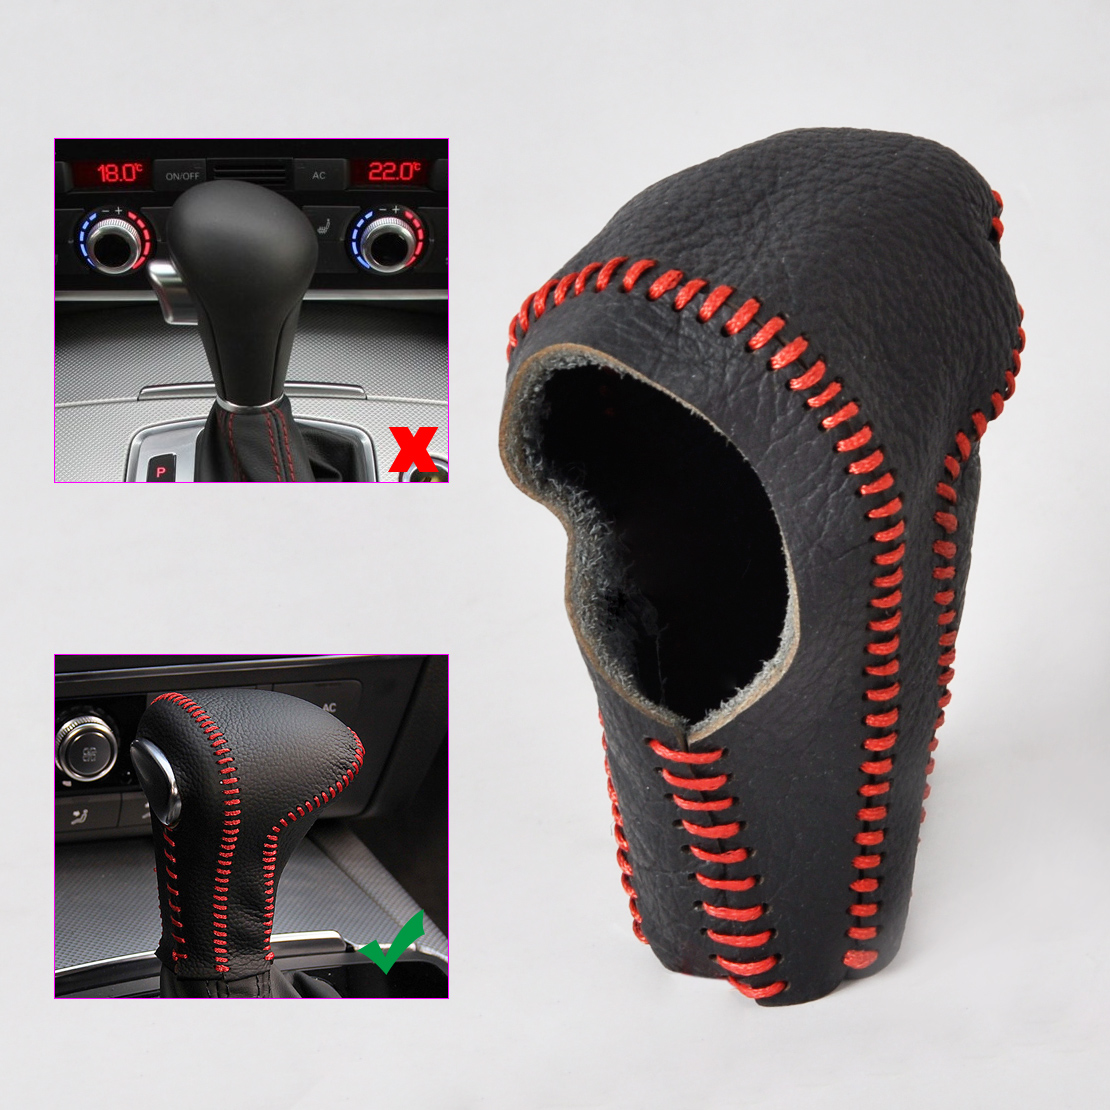 CITALL Car Styling Black Leather Red Thread Genuine Gear Shift Knob Cover for font b Audi